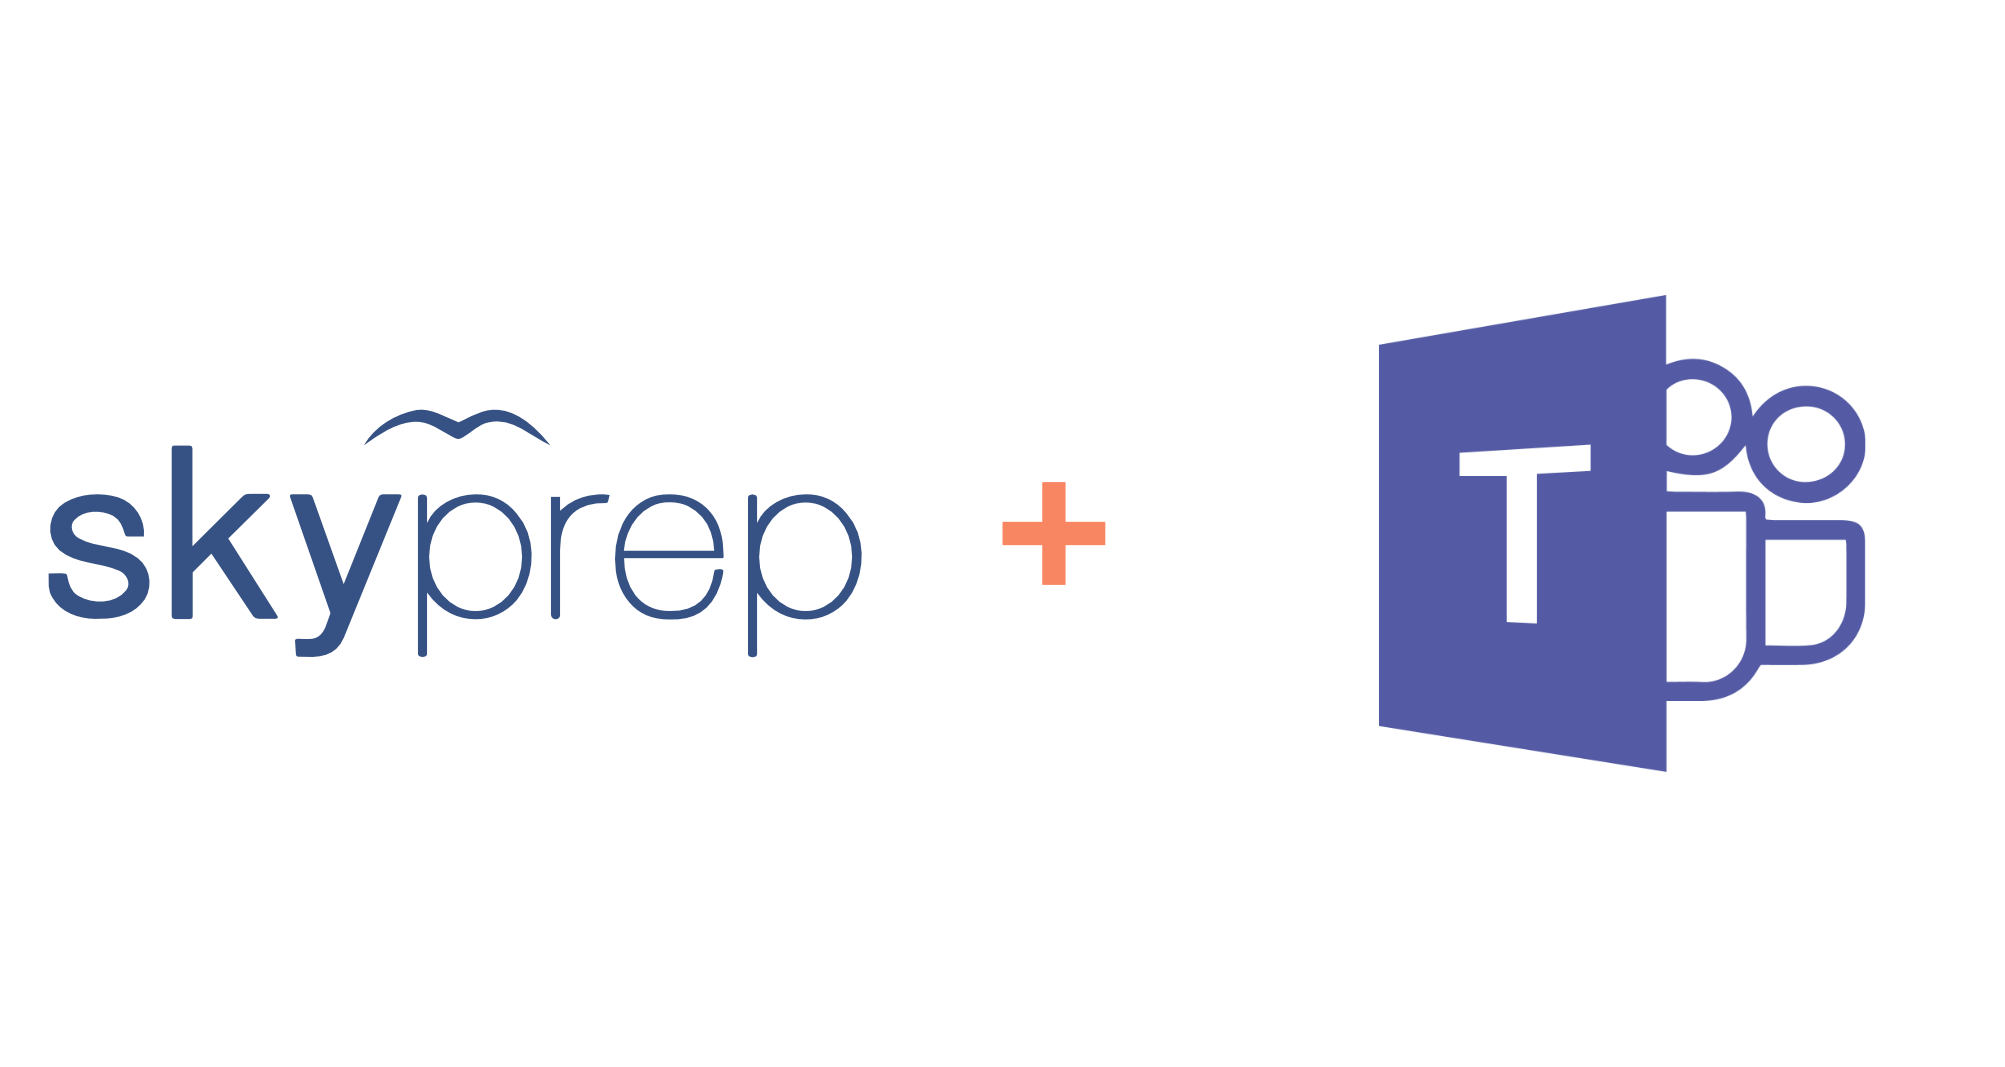 Blog post image pertaining to Microsoft Teams Integration for the SkyPrep Learning Management System